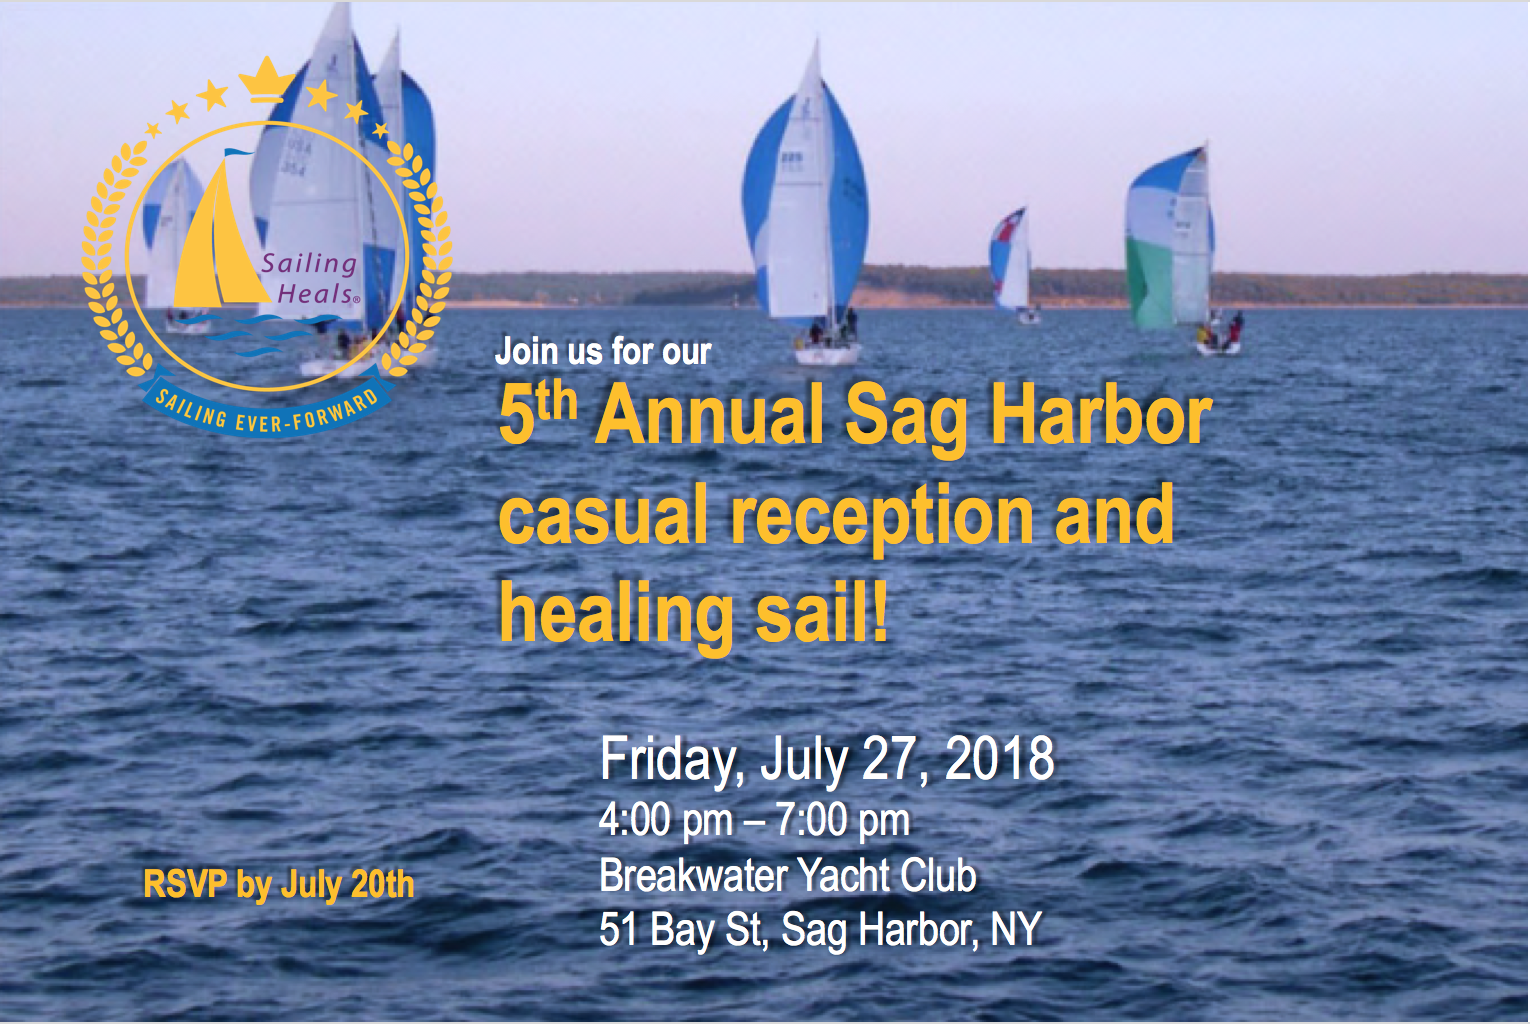 7/27/18 Sag Harbor Healing sail and casual reception.